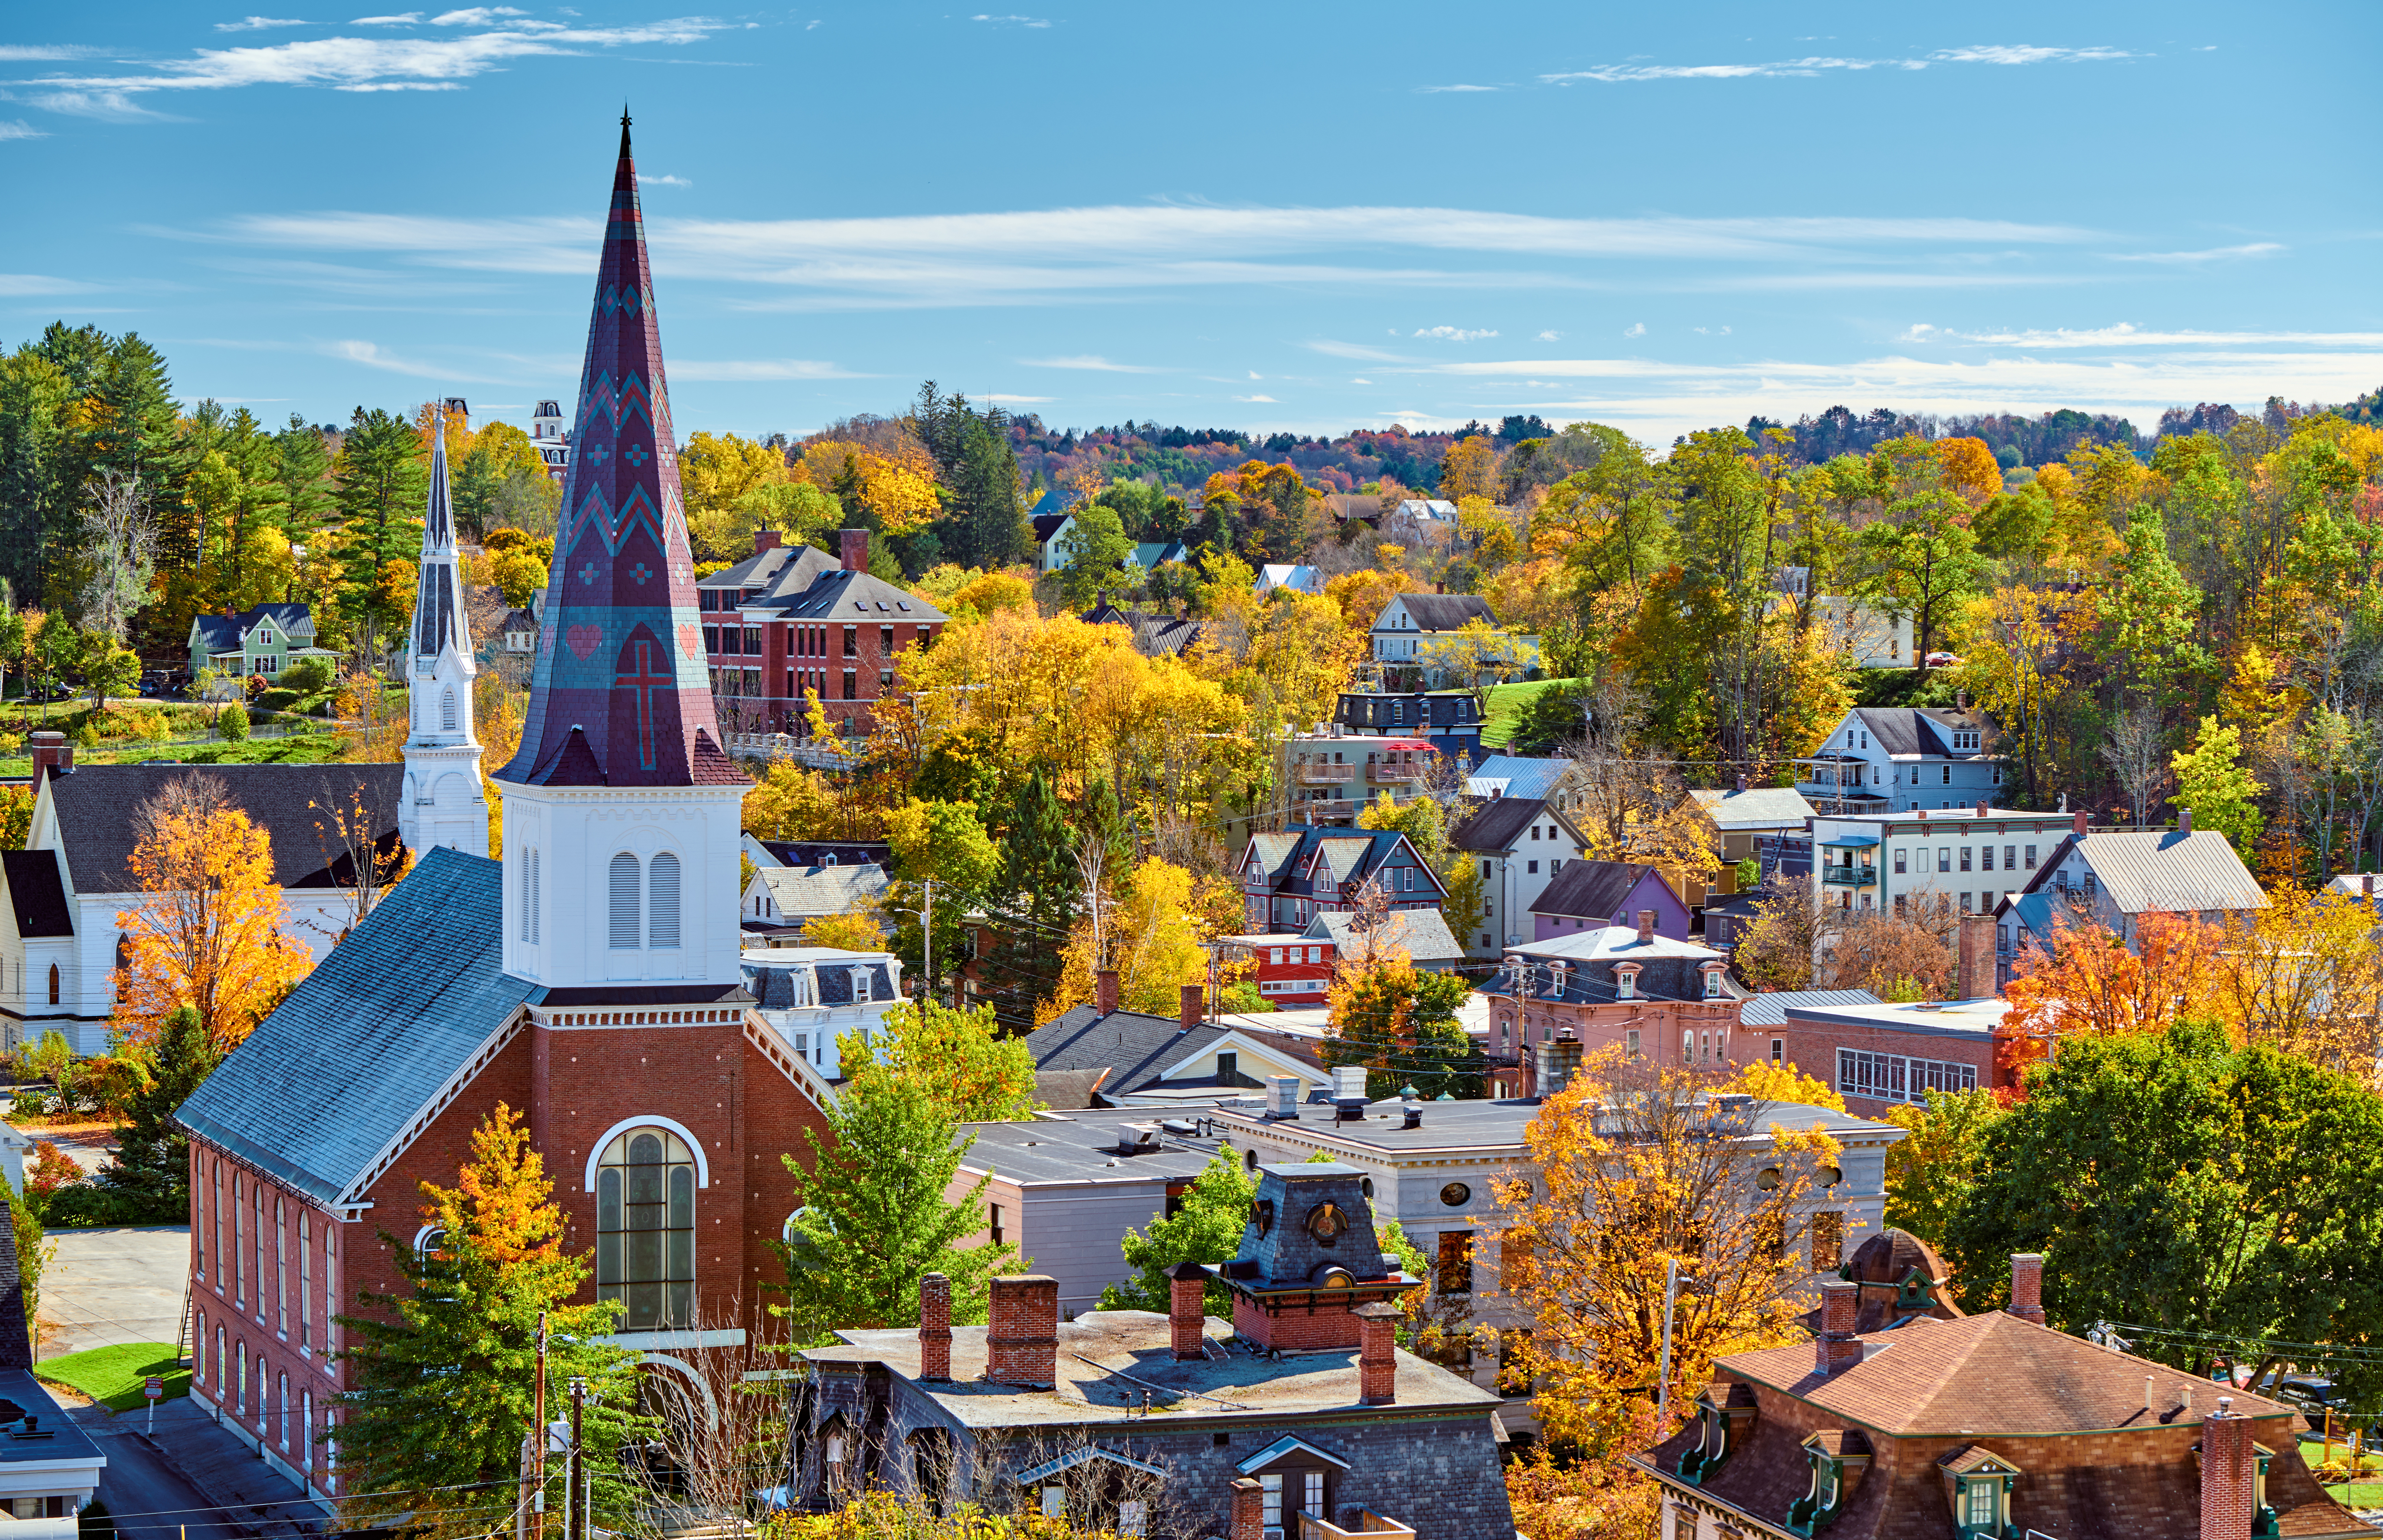 Vermont town in autumn